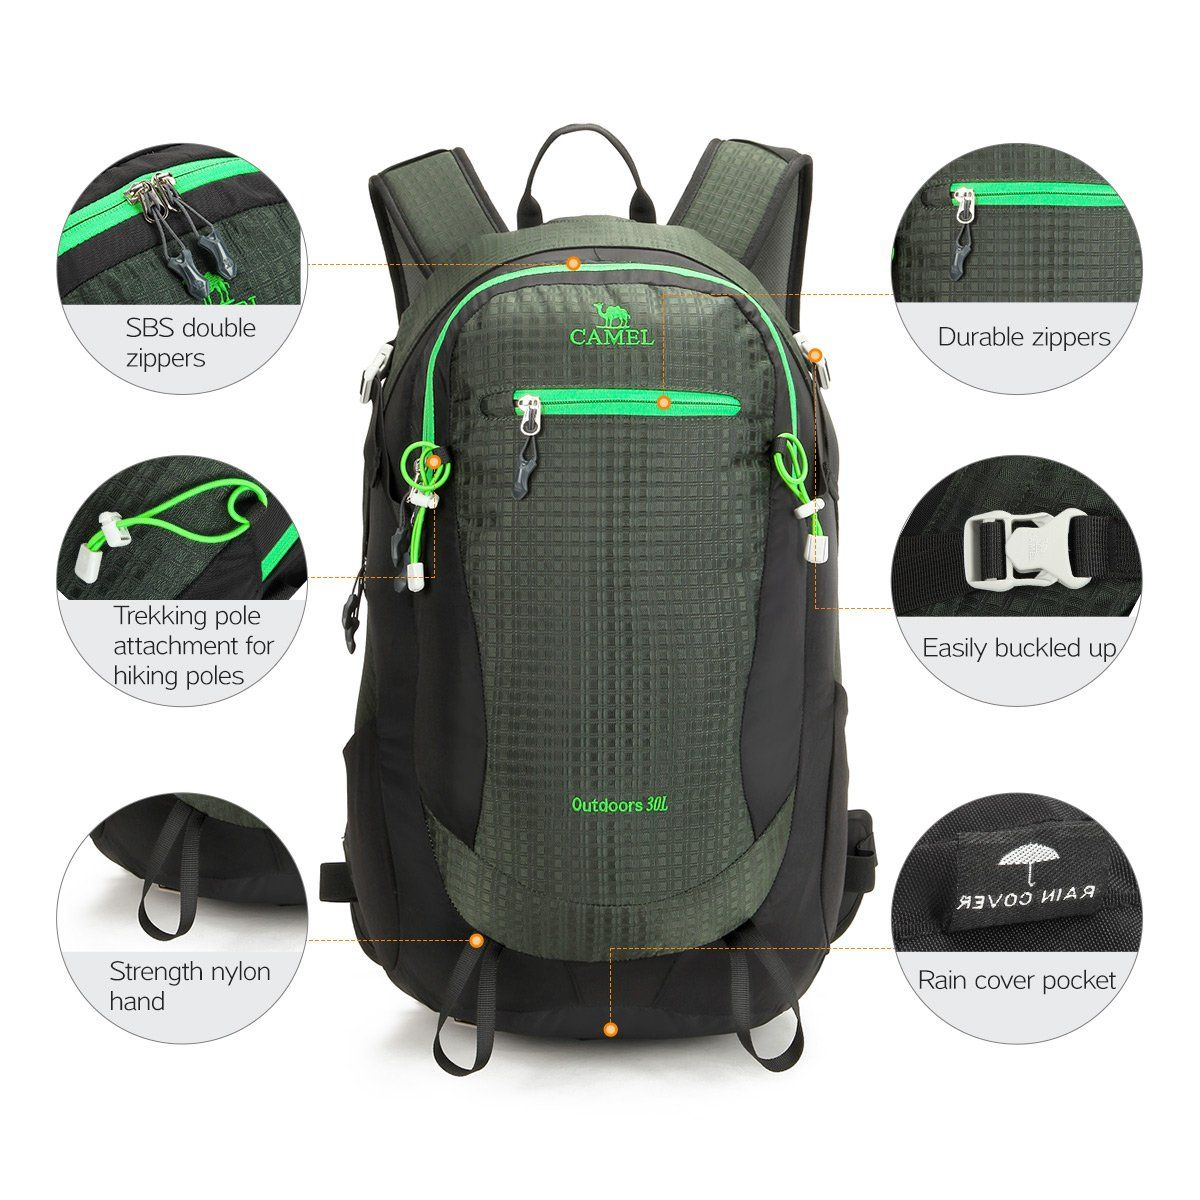 Camel Crown Hiking Backpack 30L Waterproof Outdoor Daypack for Camping  Climbing Trekking Mountaineering Back Pack for cbe5c27a9f